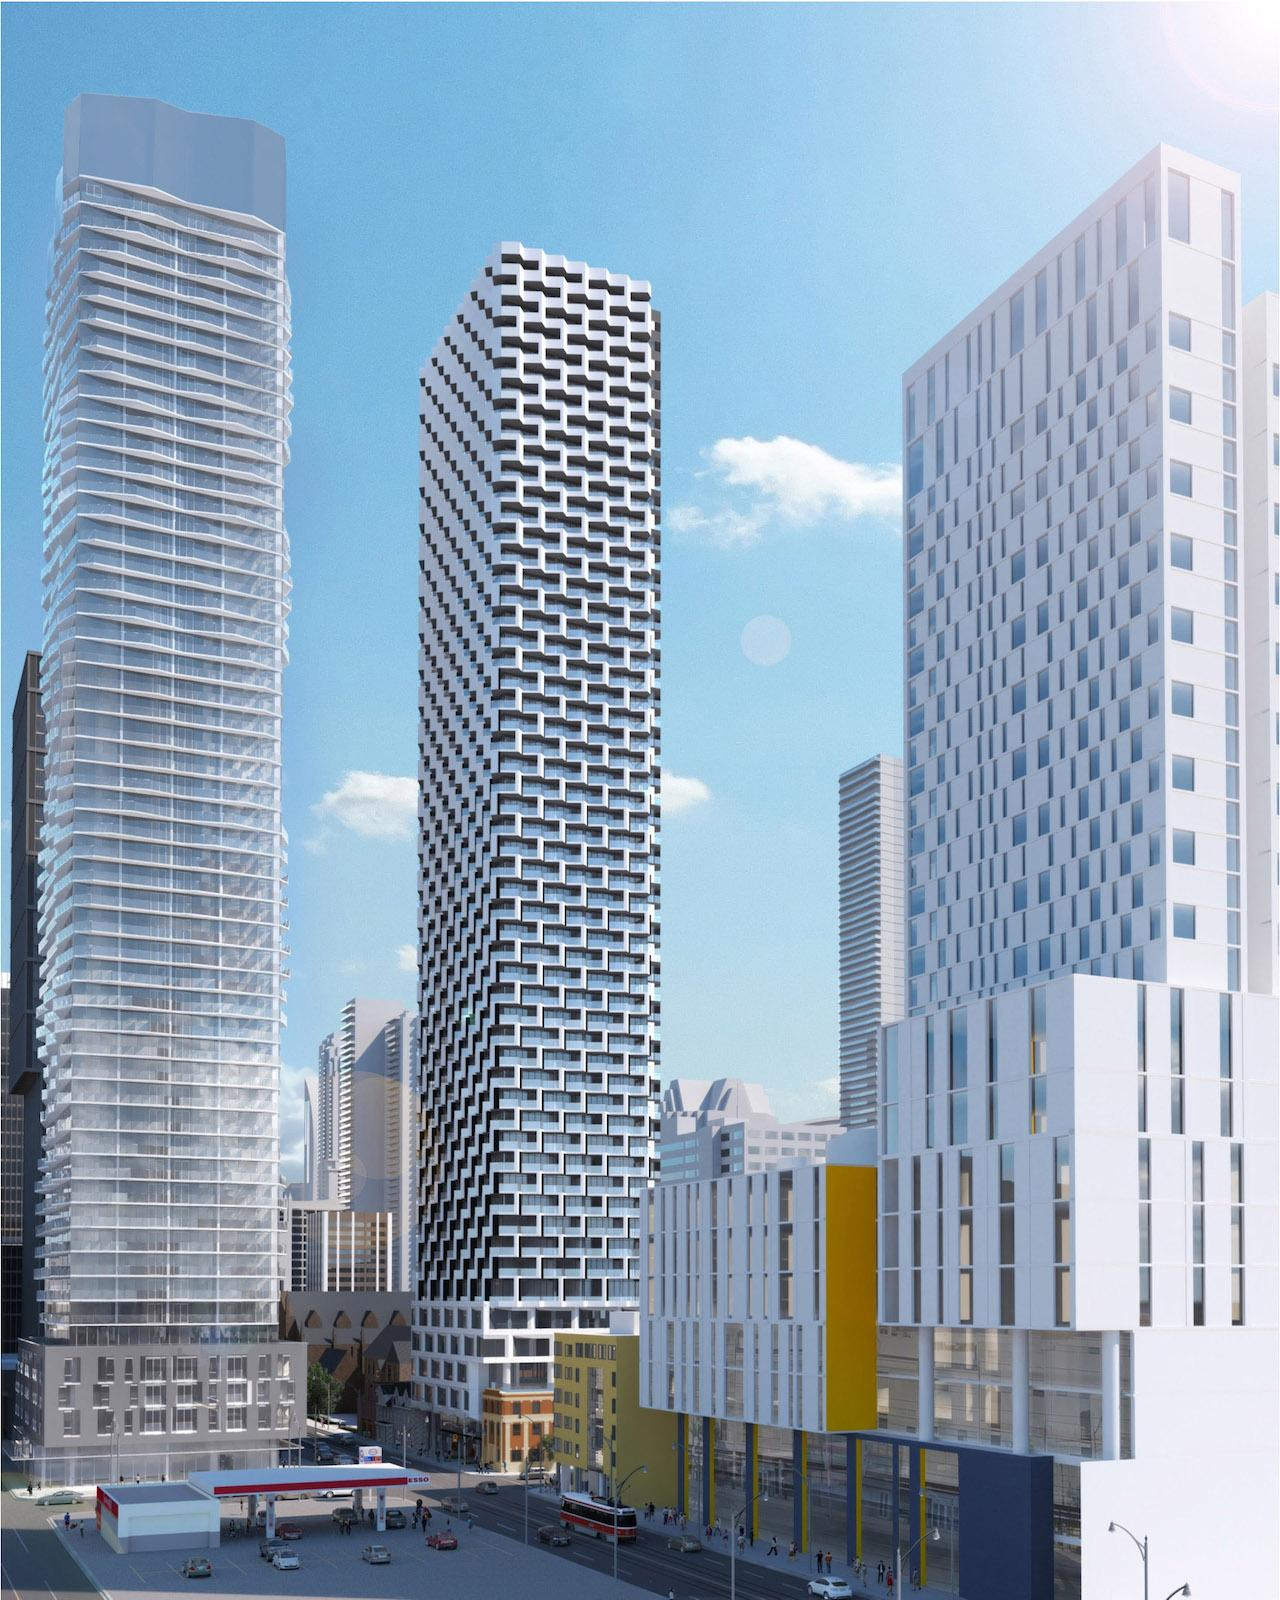 Rendering of 250 Church Condos and surrounding high-rise buildings in Toronto